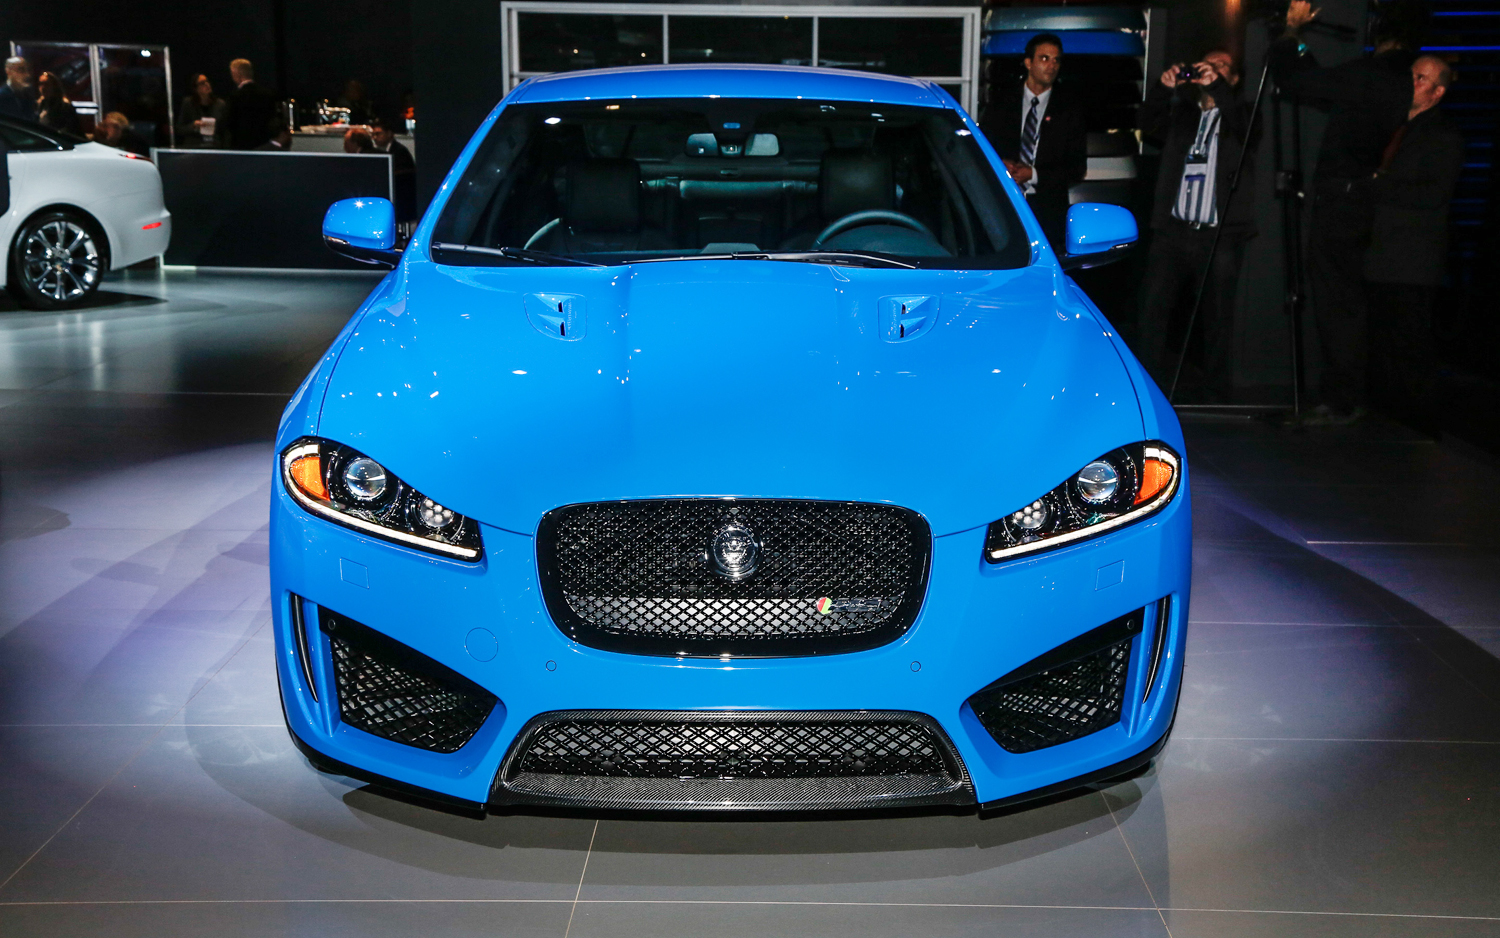 Jaguar XFR S Price picture Free Download Image Of